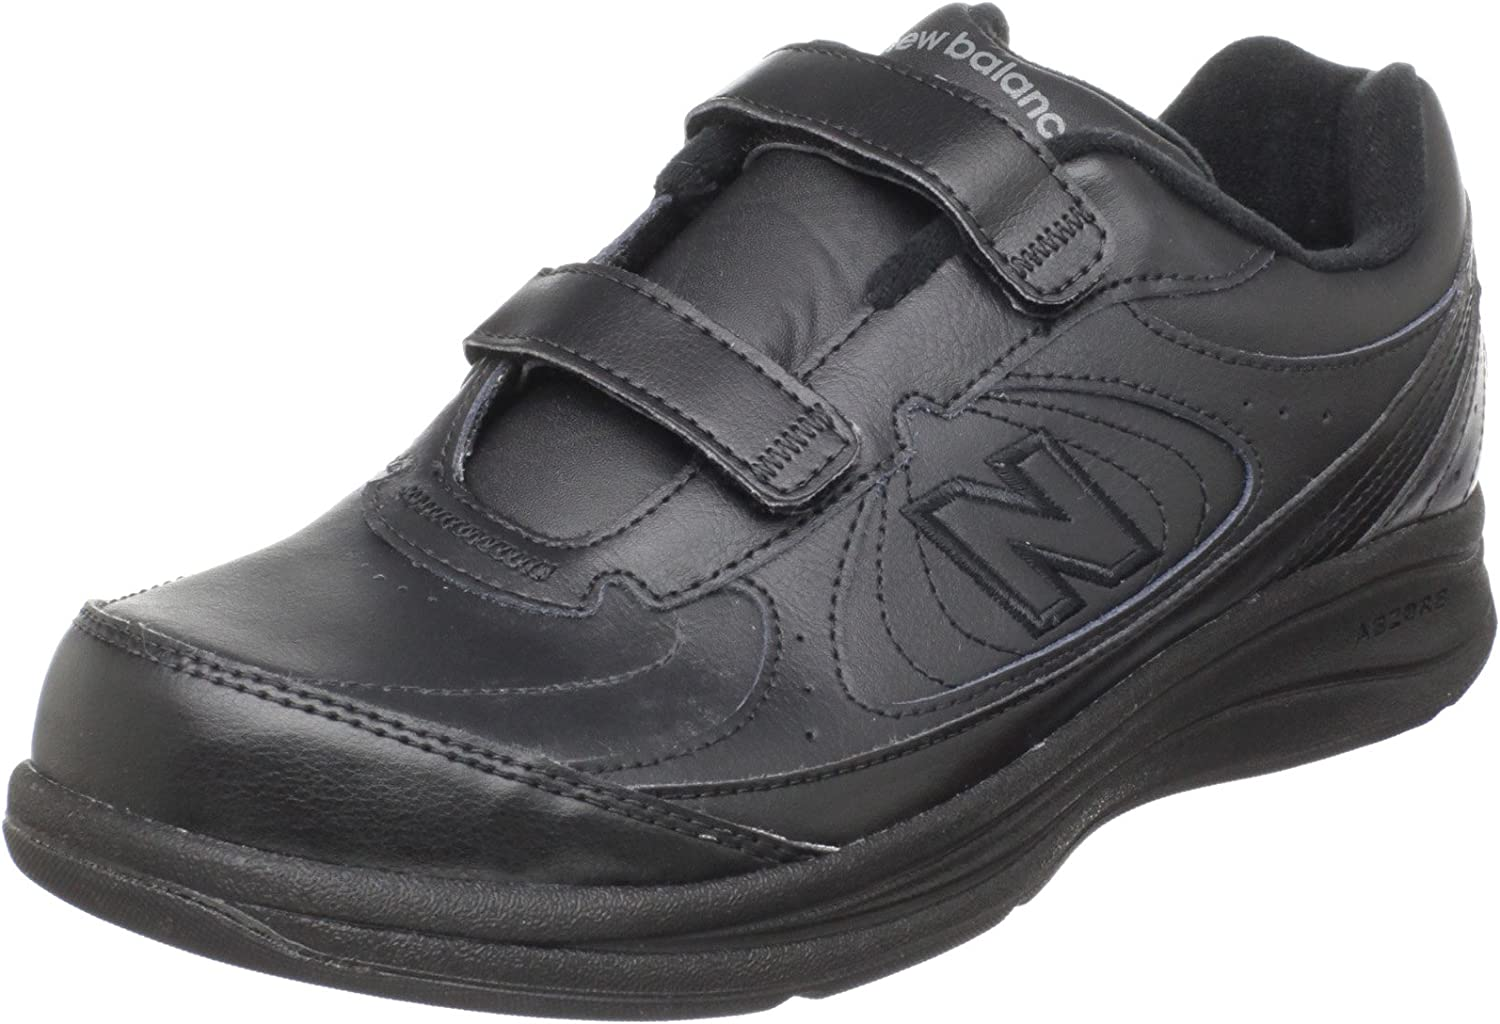 New Balance Women's WW577 Hook and Loop Walking shoes